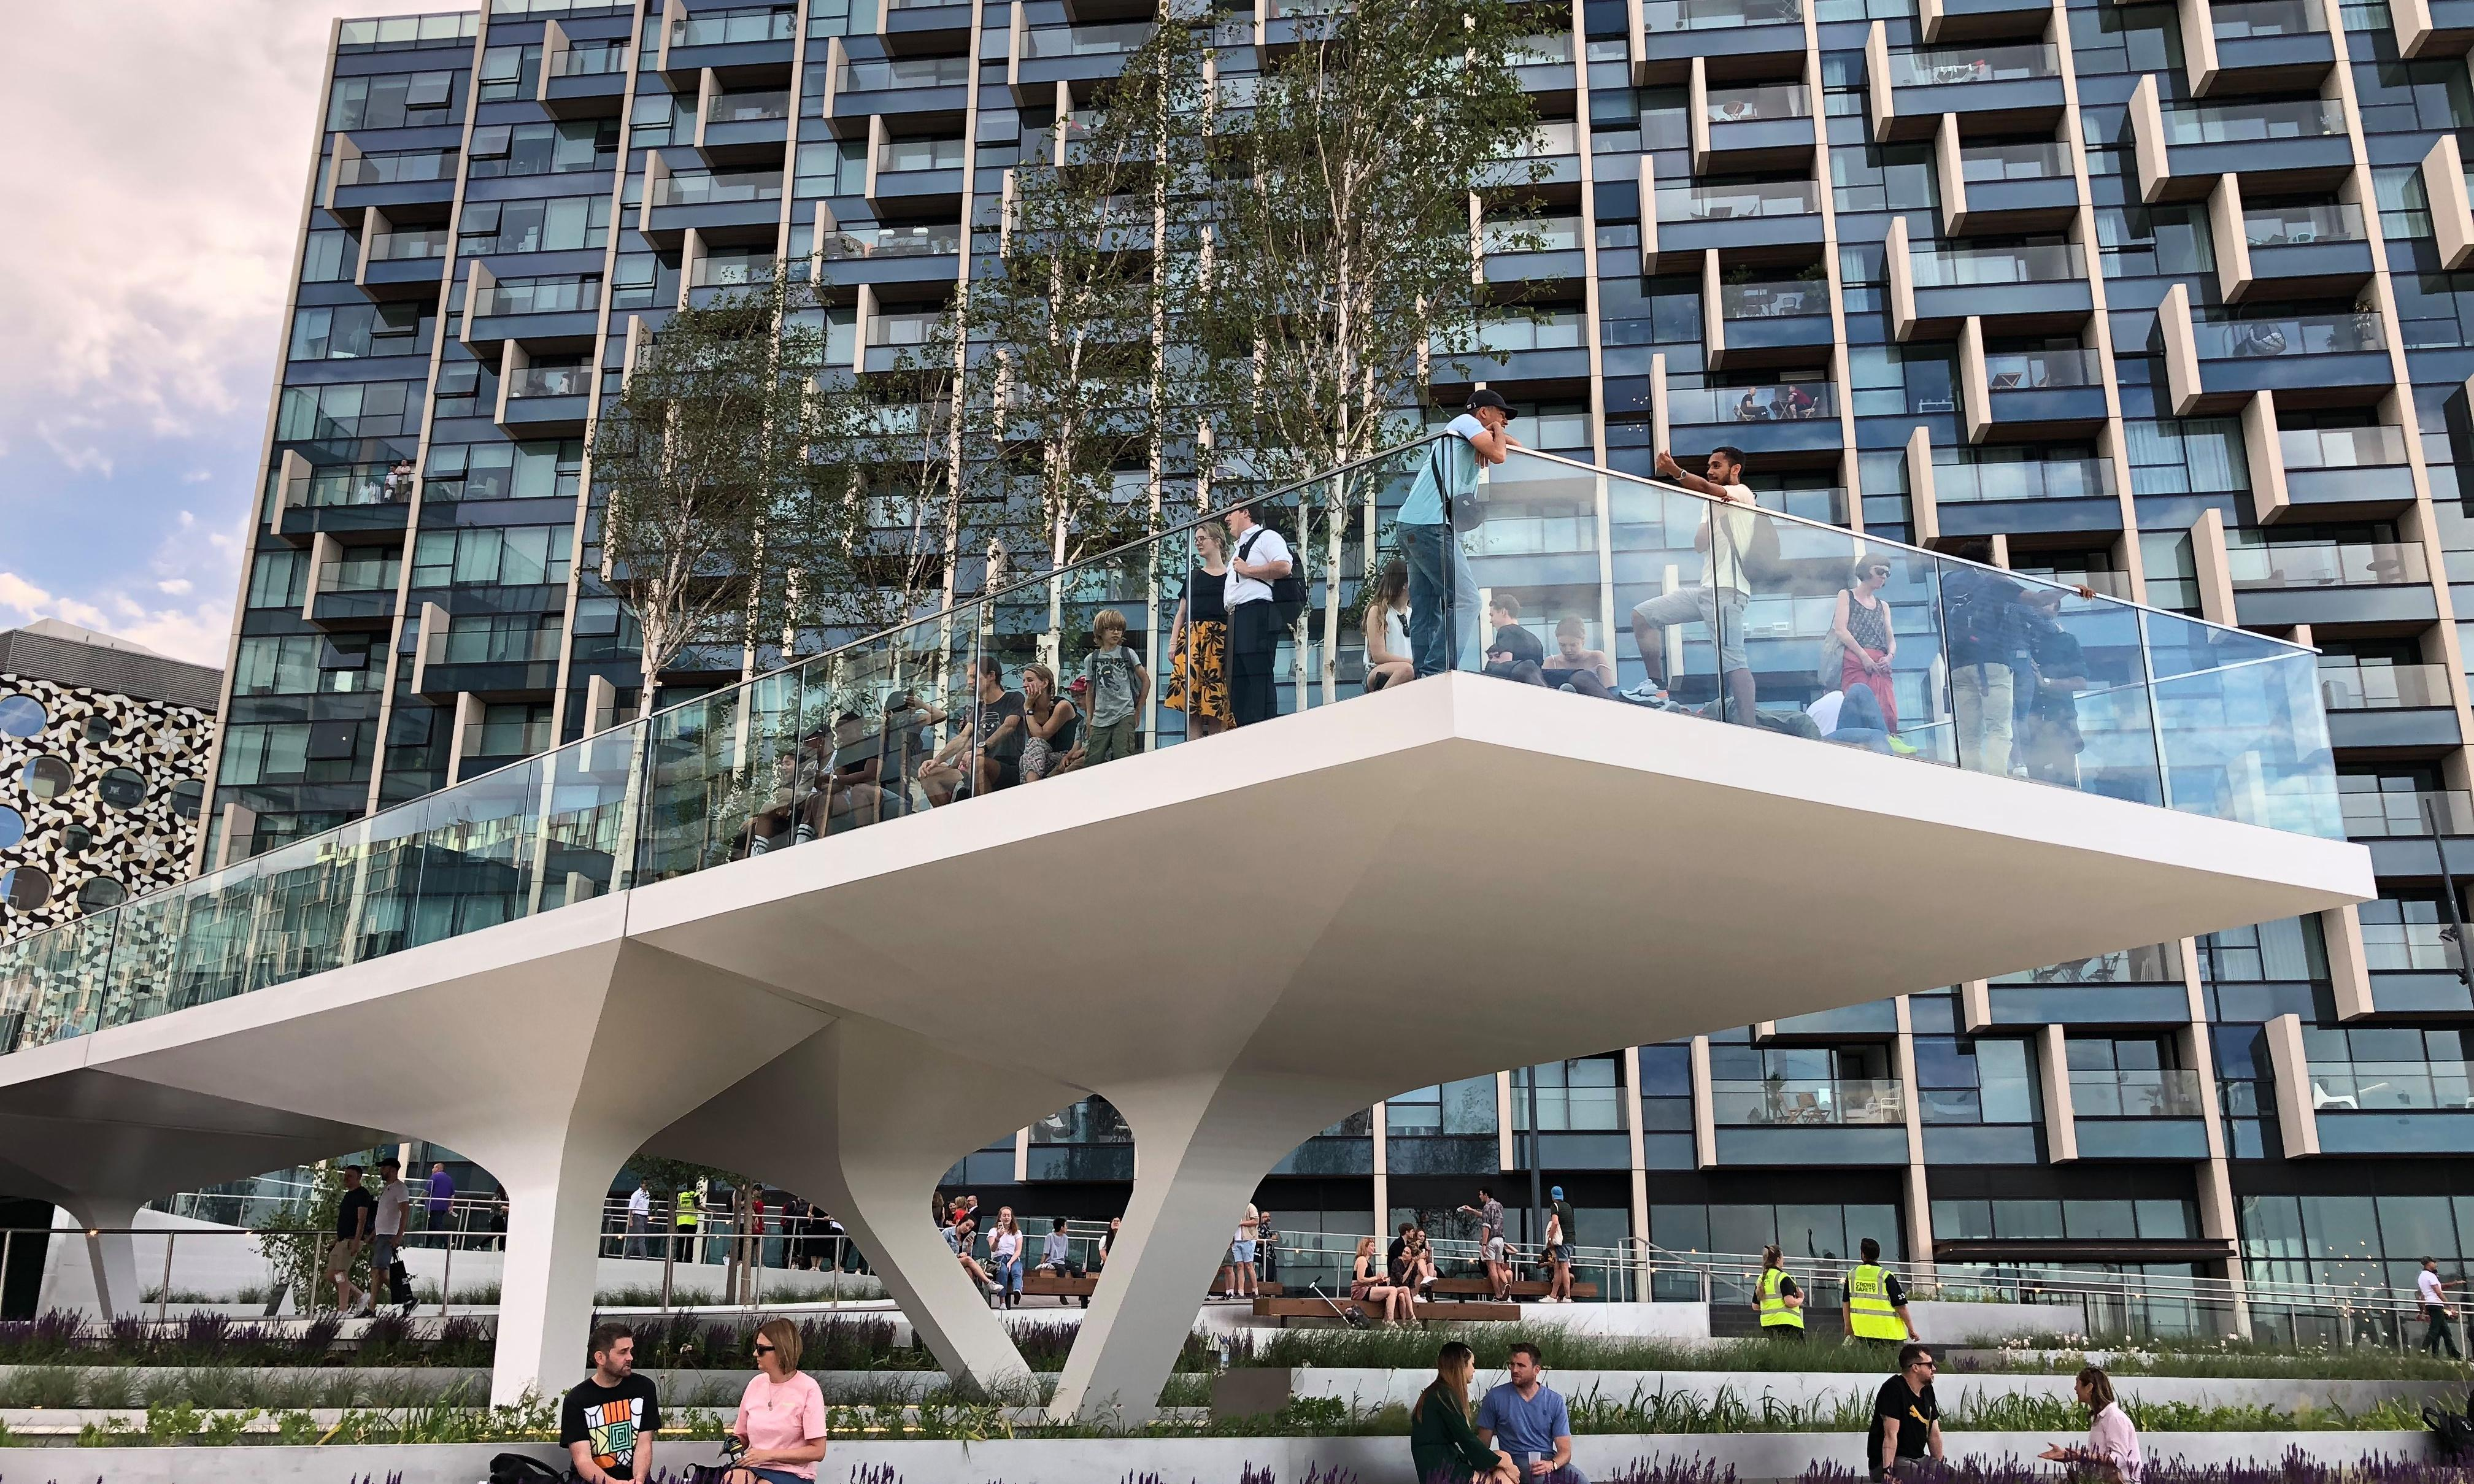 London's answer to New York's High Line? You must be joking